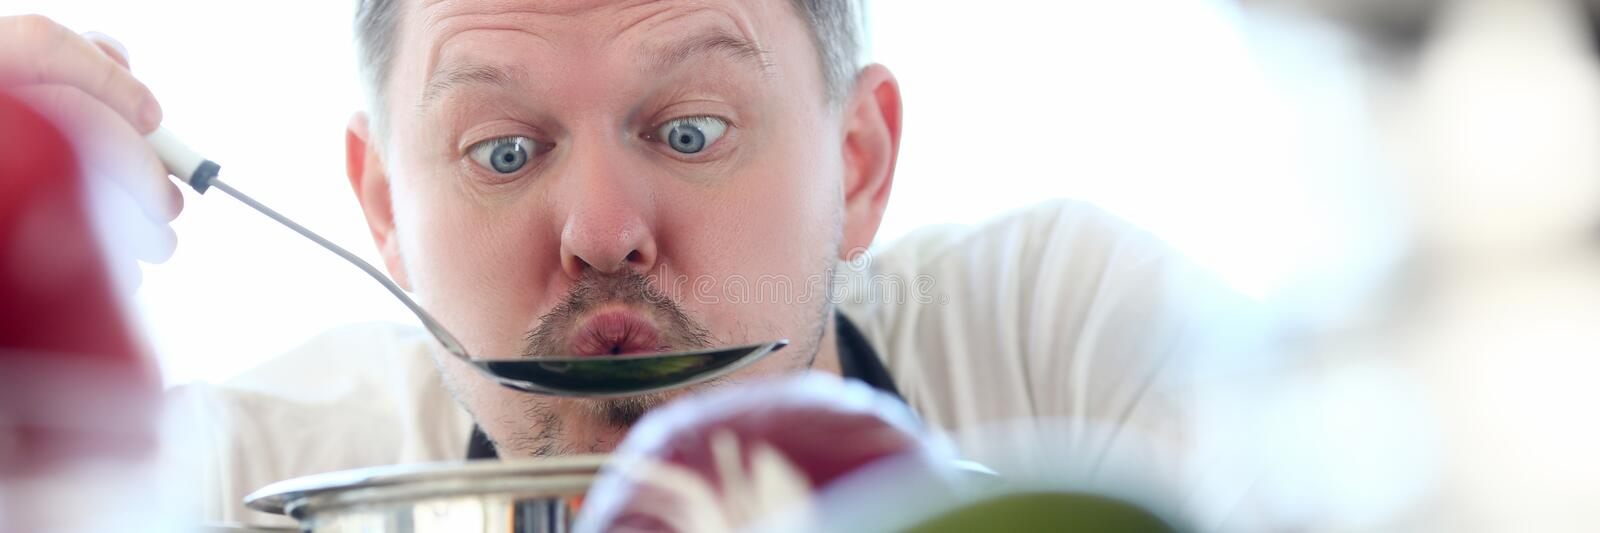 Male cook tries hot soup from pan. Blowing on him to cool concept against background of kitchen stock images